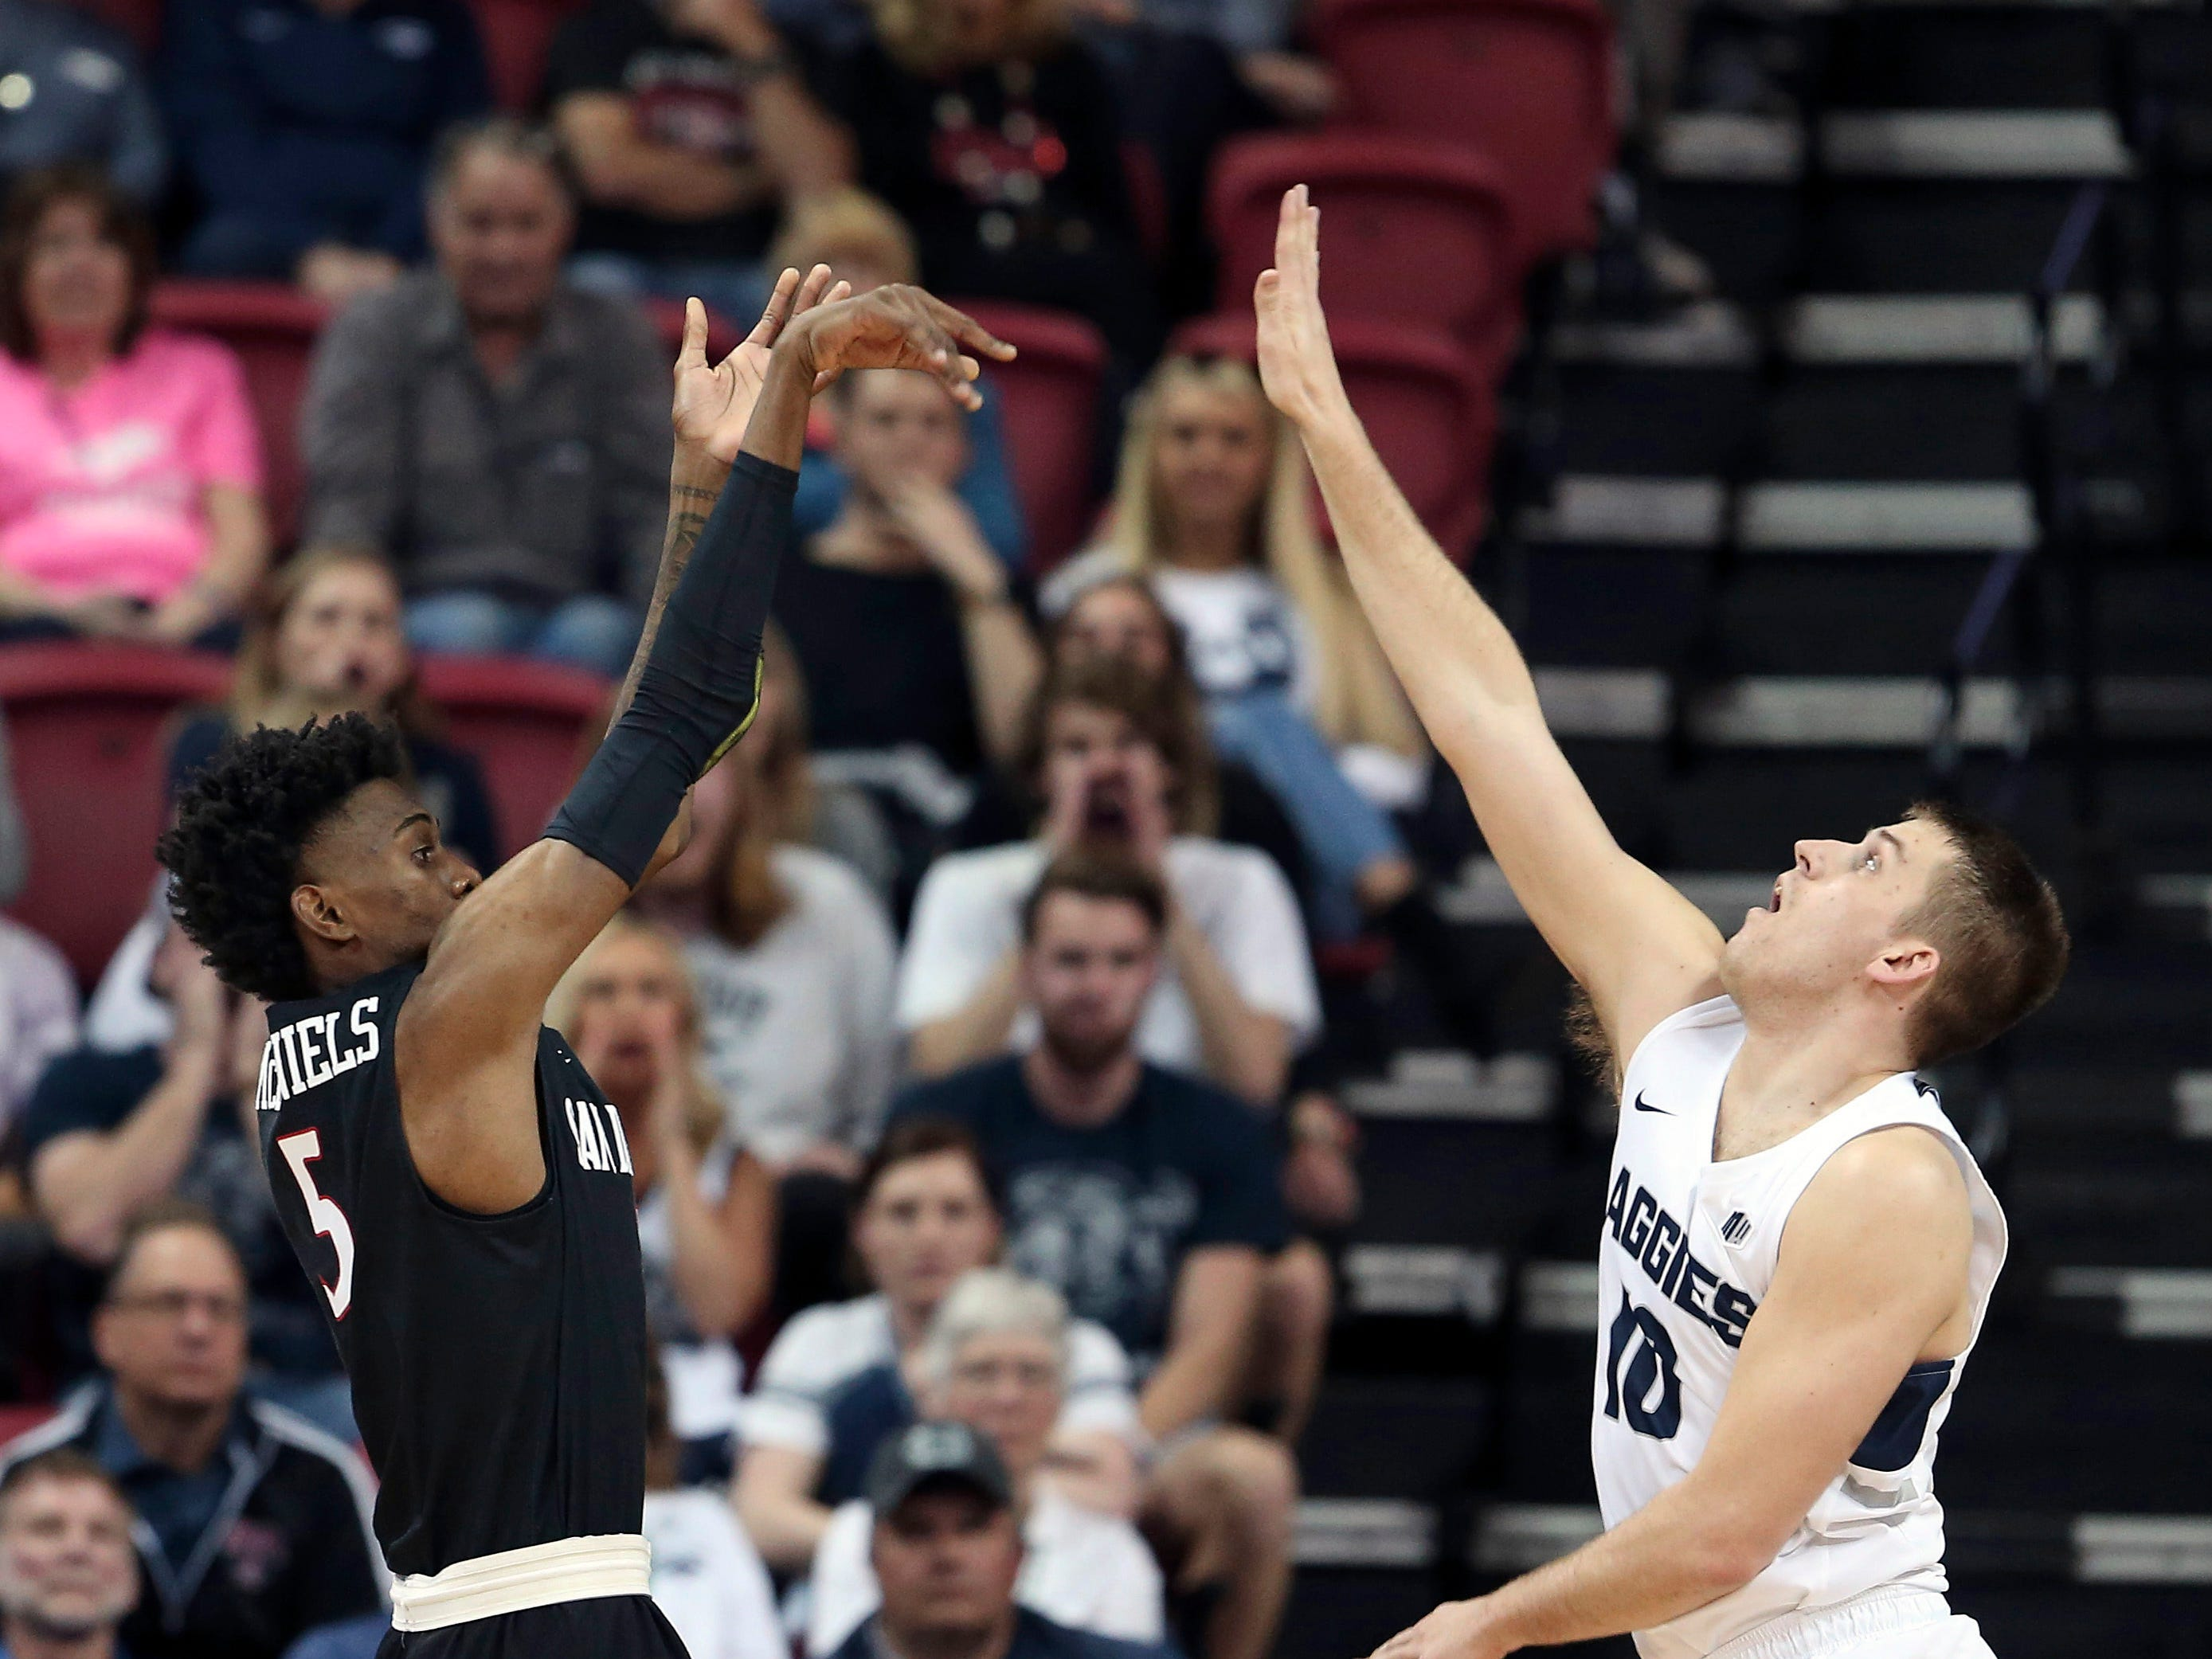 San Diego State's Jalen McDaniels shoots as Utah State's Quinn Taylor defends during the first half of an NCAA college basketball game in the Mountain West Conference men's tournament championship Saturday, March 16, 2019, in Las Vegas. \